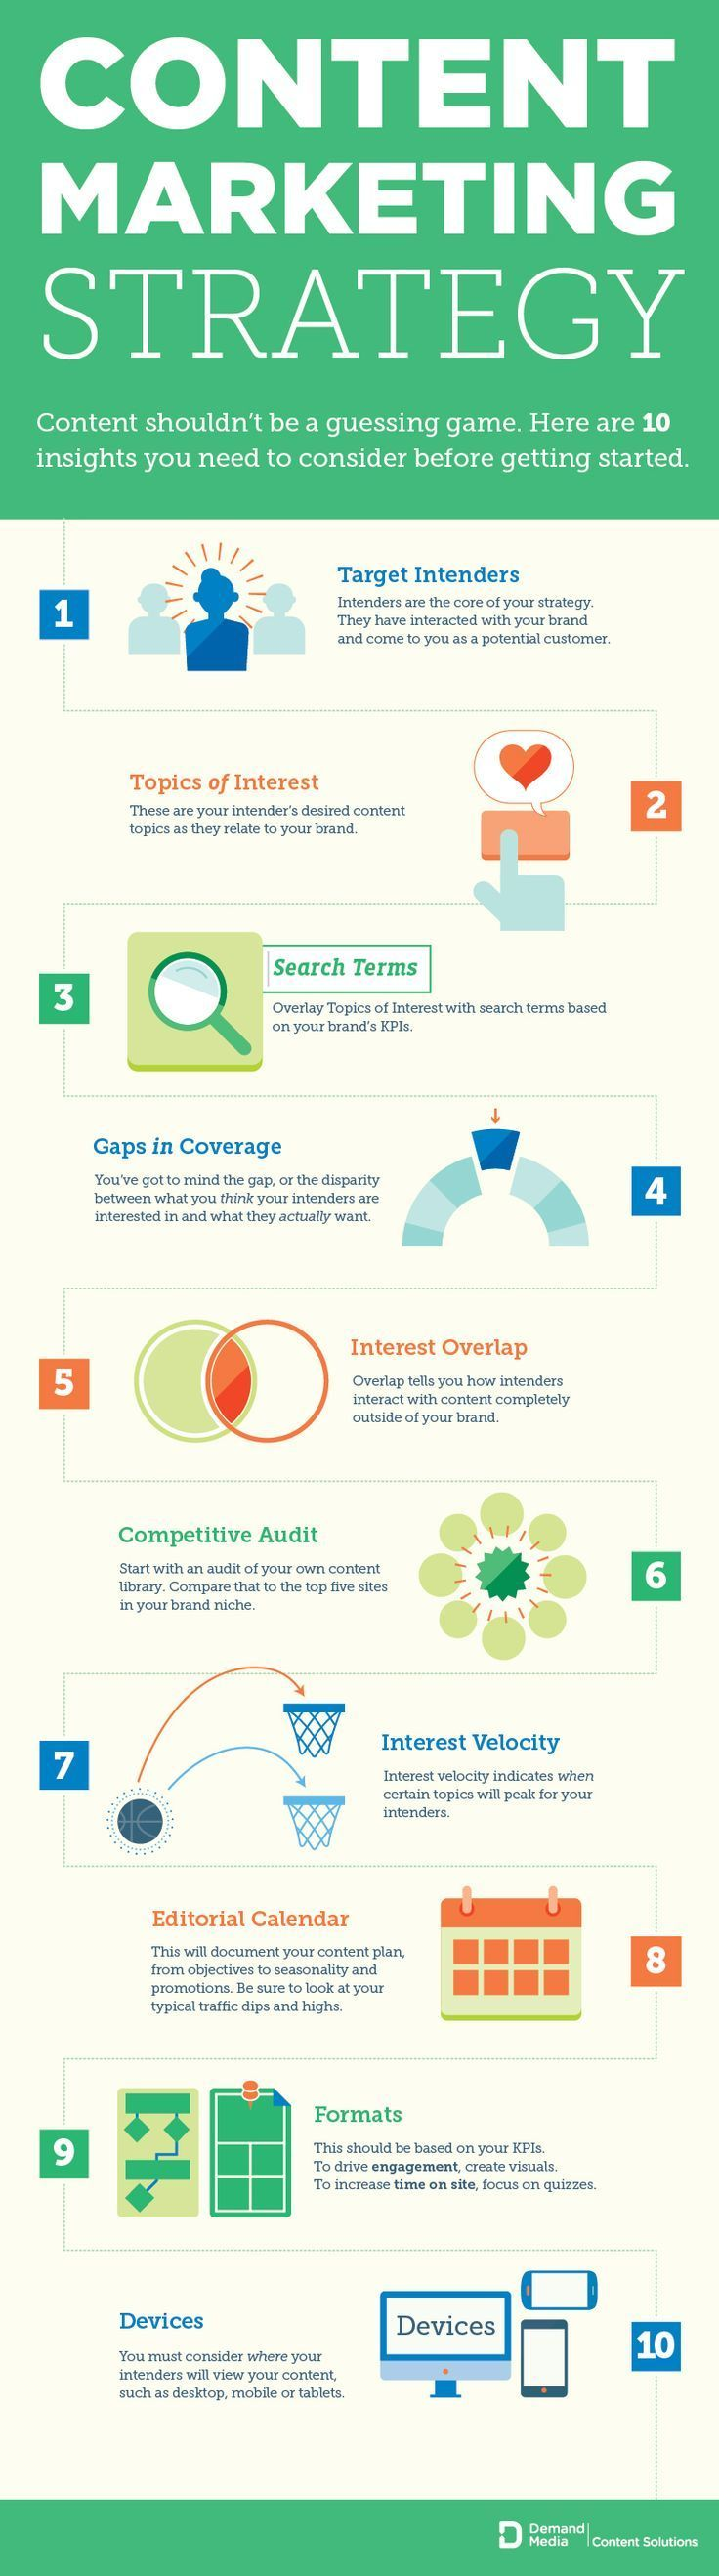 Content Marketing Strategy #infographic #ContentMarketing #Marketing AND Take this Free Full Lenght Video Training on HOW to Start an Online Business